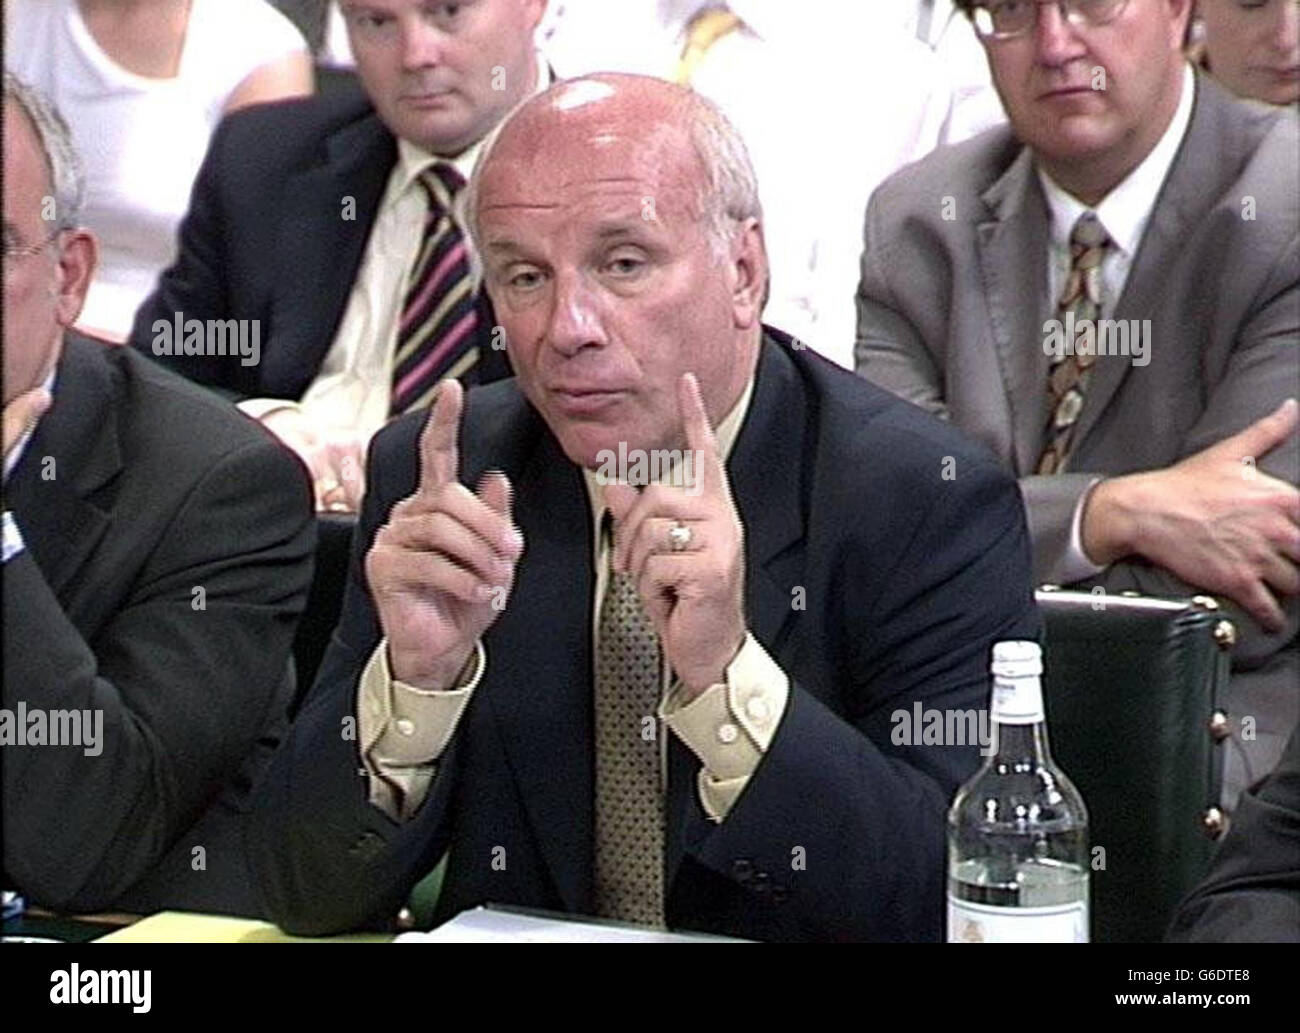 BBC director general Greg Dyke appears before the Culture, Media and Sport select committee. The BBC refused to comment on the contents of its annual report, which are meant to remain secret until put before the committee. But there has been widespread speculation on what it will reveal, including the state of the broadcaster's finances. A 1 billion deficit in the BBC's pension fund was revealed earlier this month when director of finance John Smith wrote to workers to reassure them that the final-salary scheme would remain in place, despite the shortfall. Stock Photo